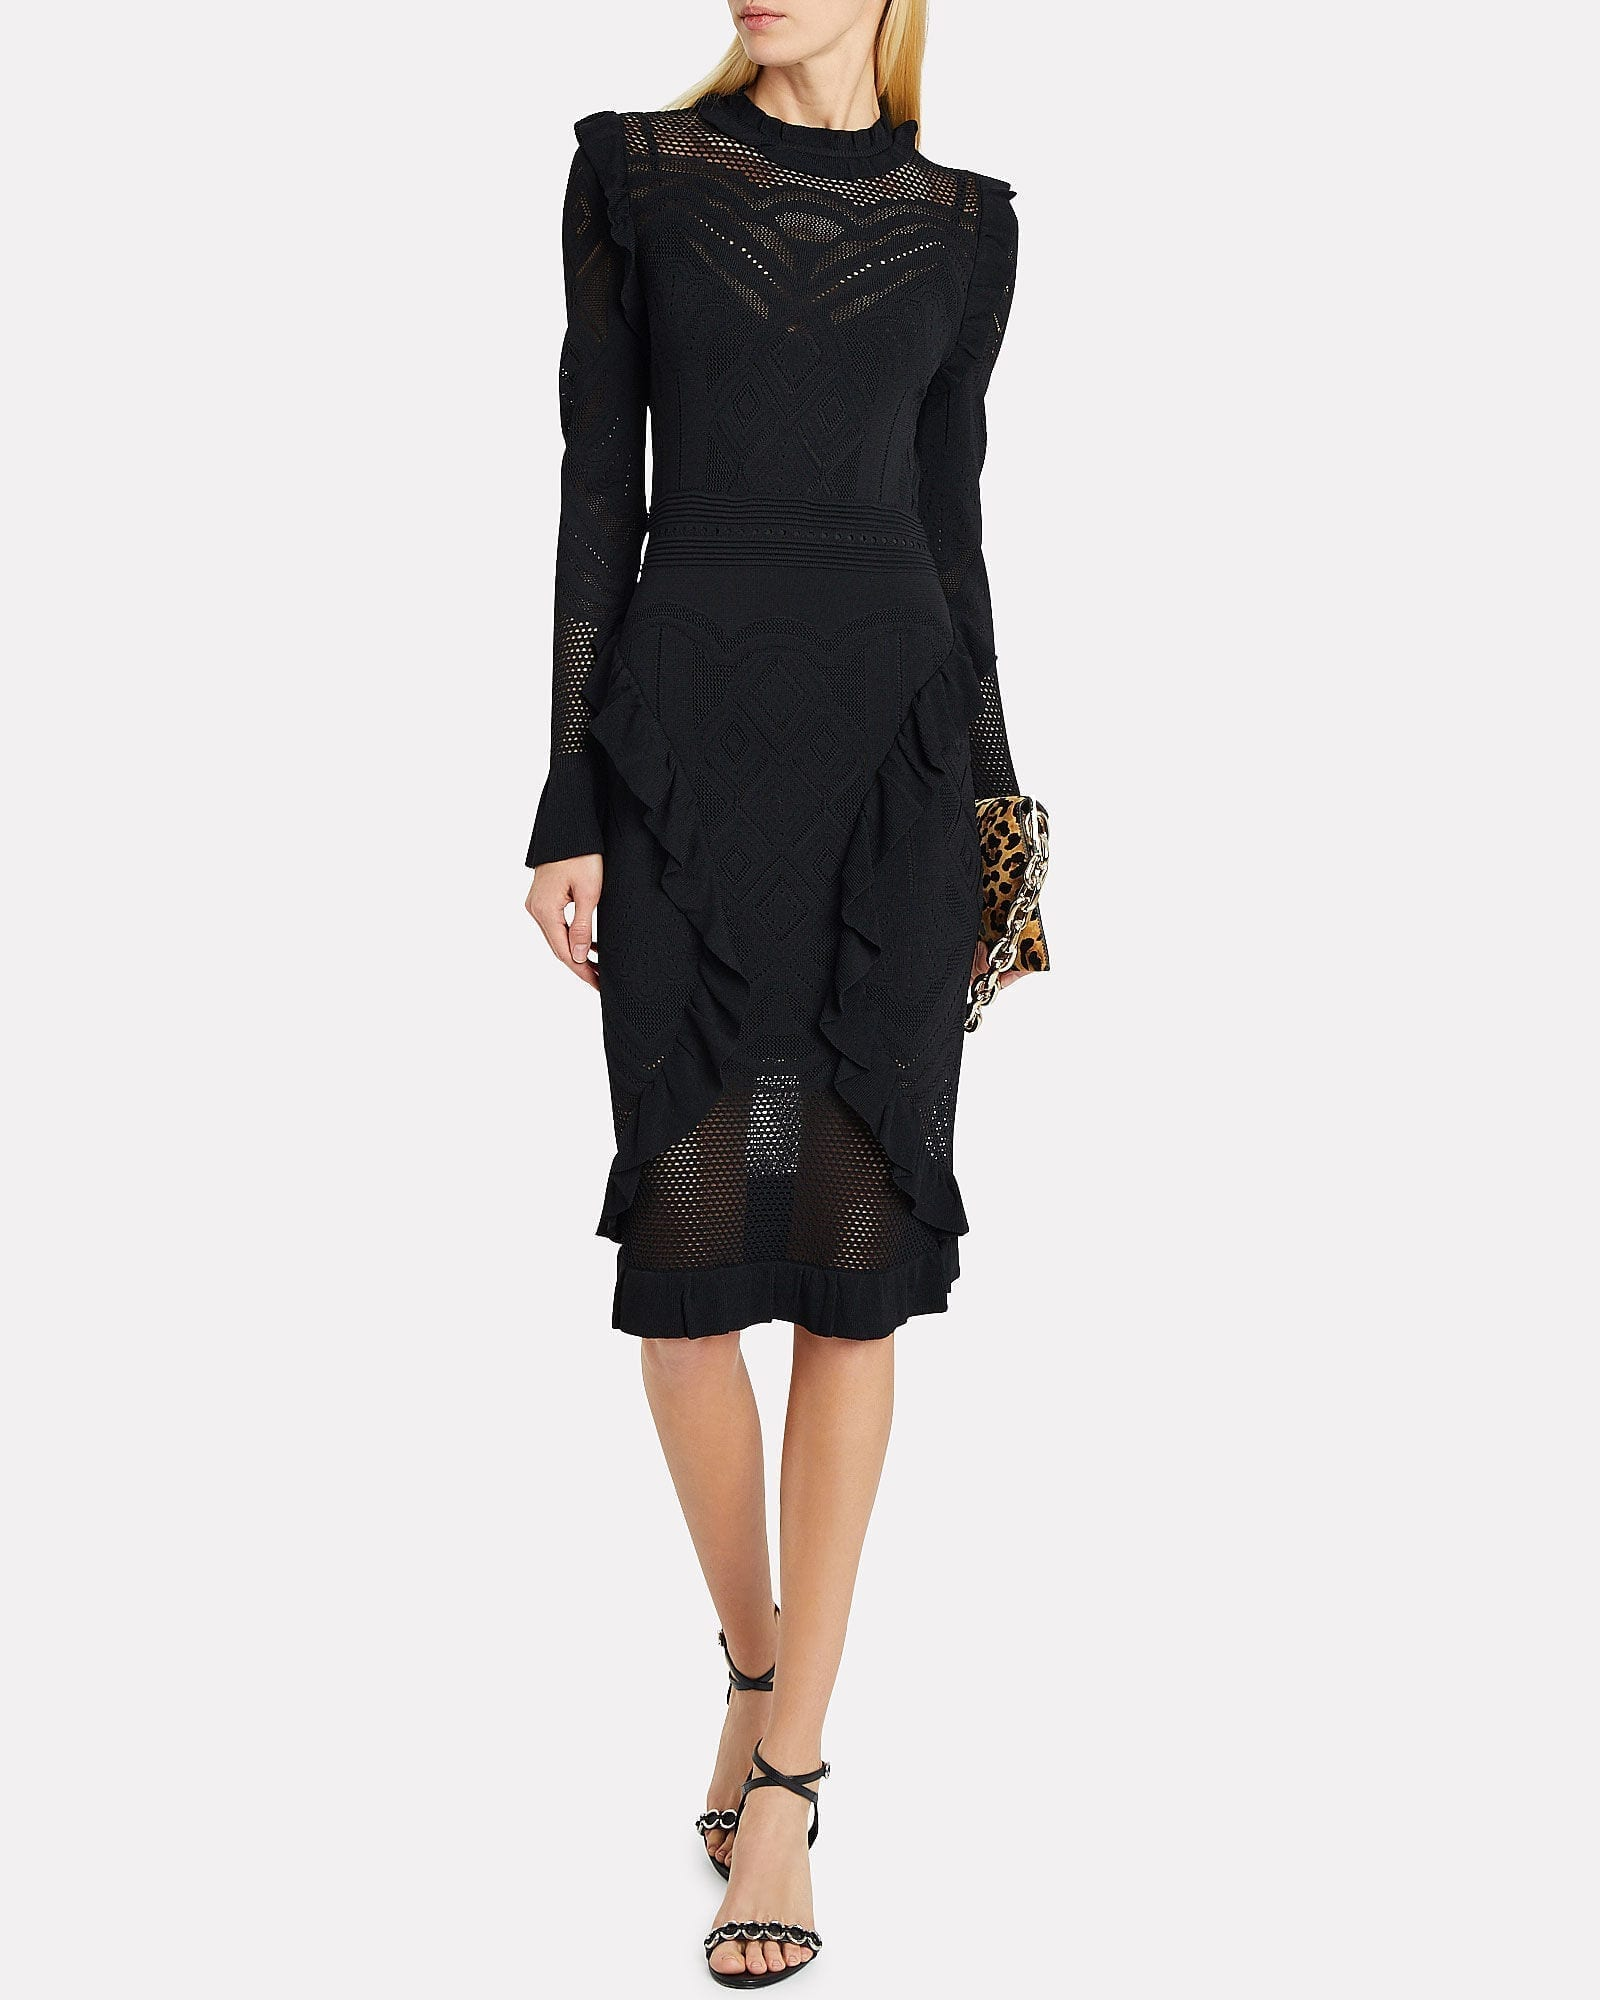 ALEXIS Sivan Pointelle Knit Midi Dress